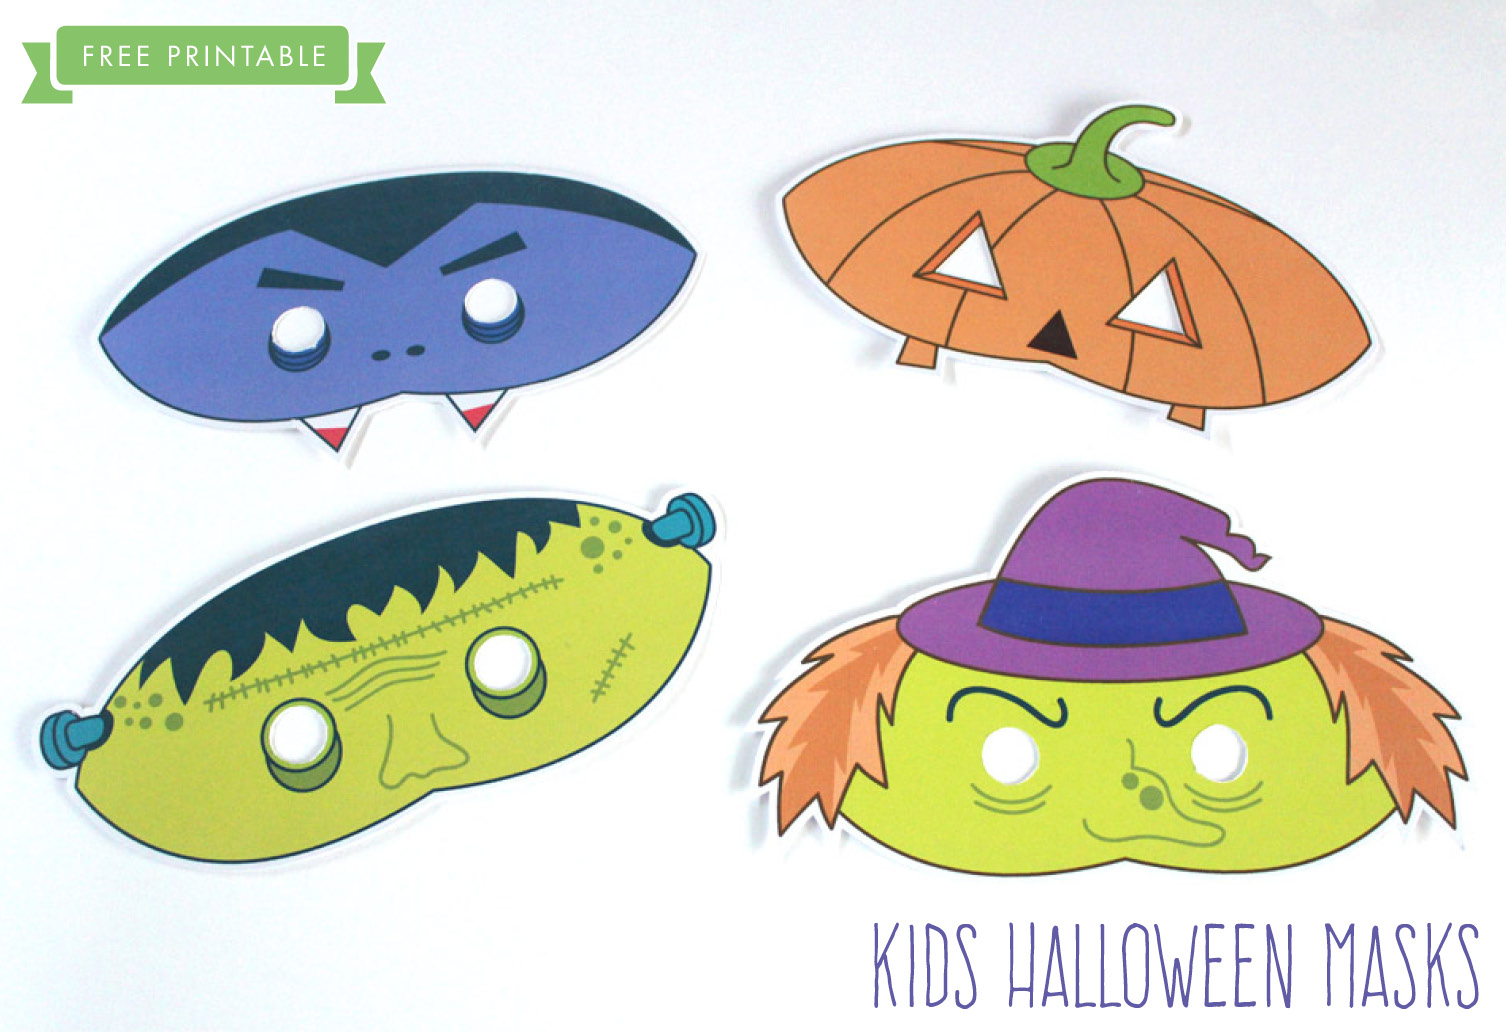 image regarding Free Printable Halloween Masks named Totally free Printable: Halloween Little ones Masks